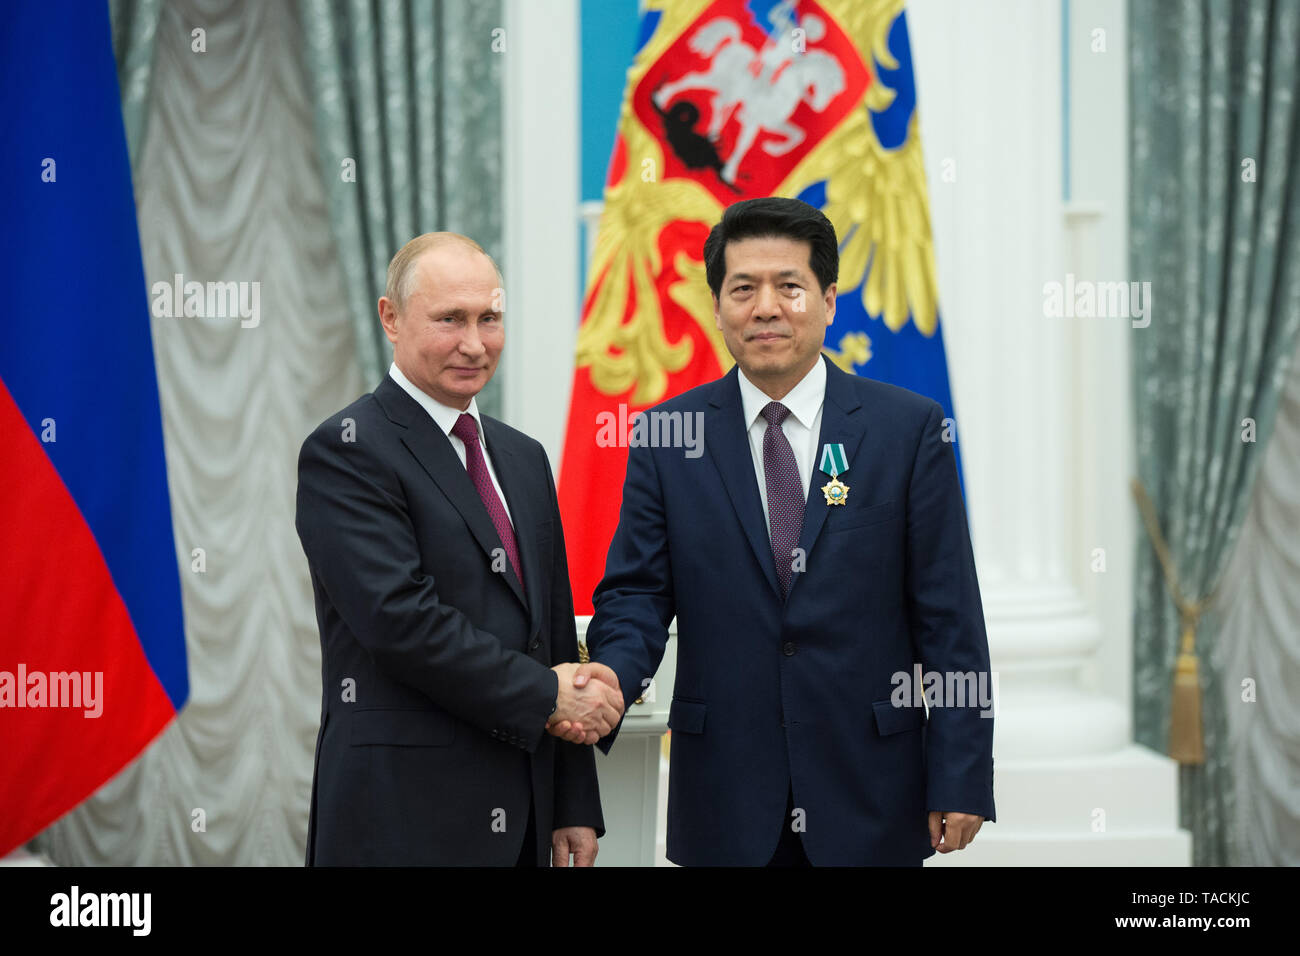 Moscow, Russia. 23rd May, 2019. Russian President Vladimir Putin (L) presents the Order of Friendship to the Chinese Ambassador to Russia Li Hui in Moscow, Russia, May 23, 2019. Credit: Qu Haiqi/Xinhua/Alamy Live News - Stock Image